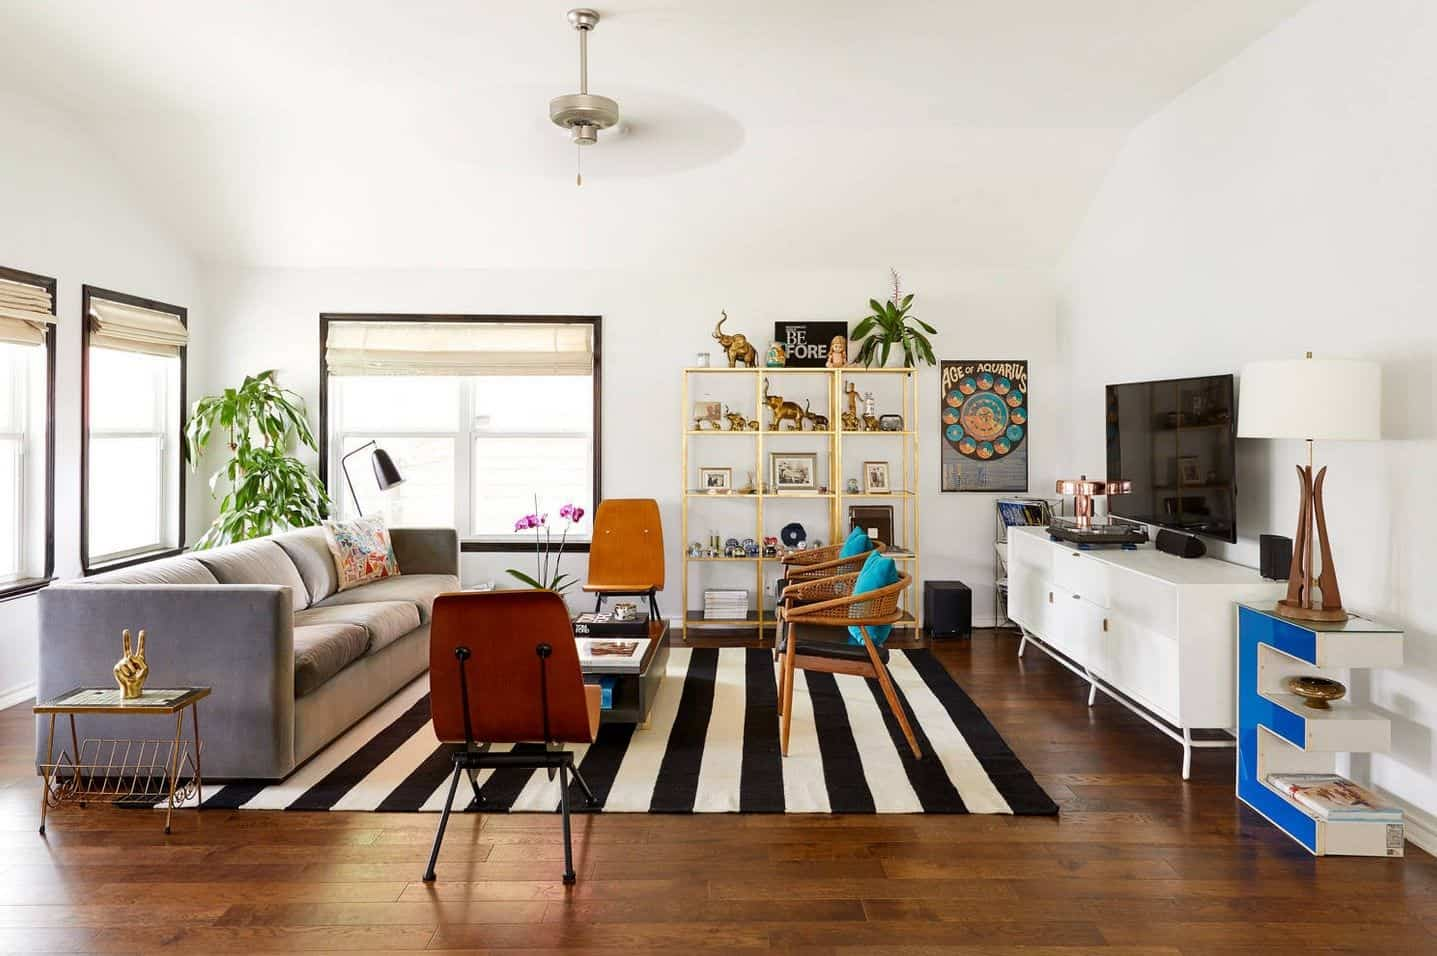 Tropical living room with a gray sectional and wooden chairs surrounding the dark wood coffee table that sits on a striking striped rug. It includes open shelving and television on a white wooden stand.